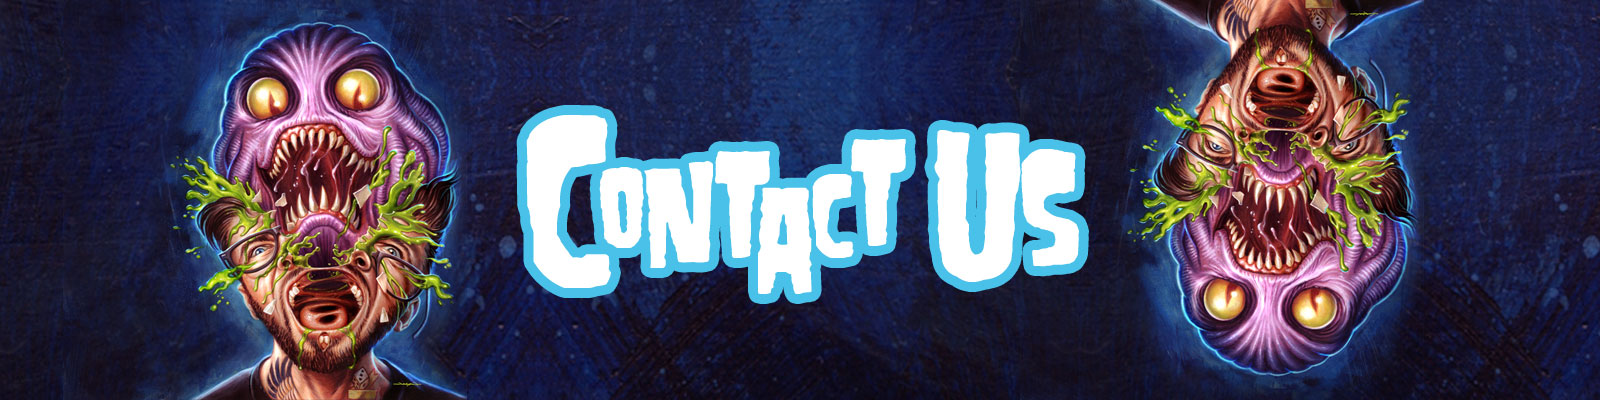 mf_contact-banner_v1